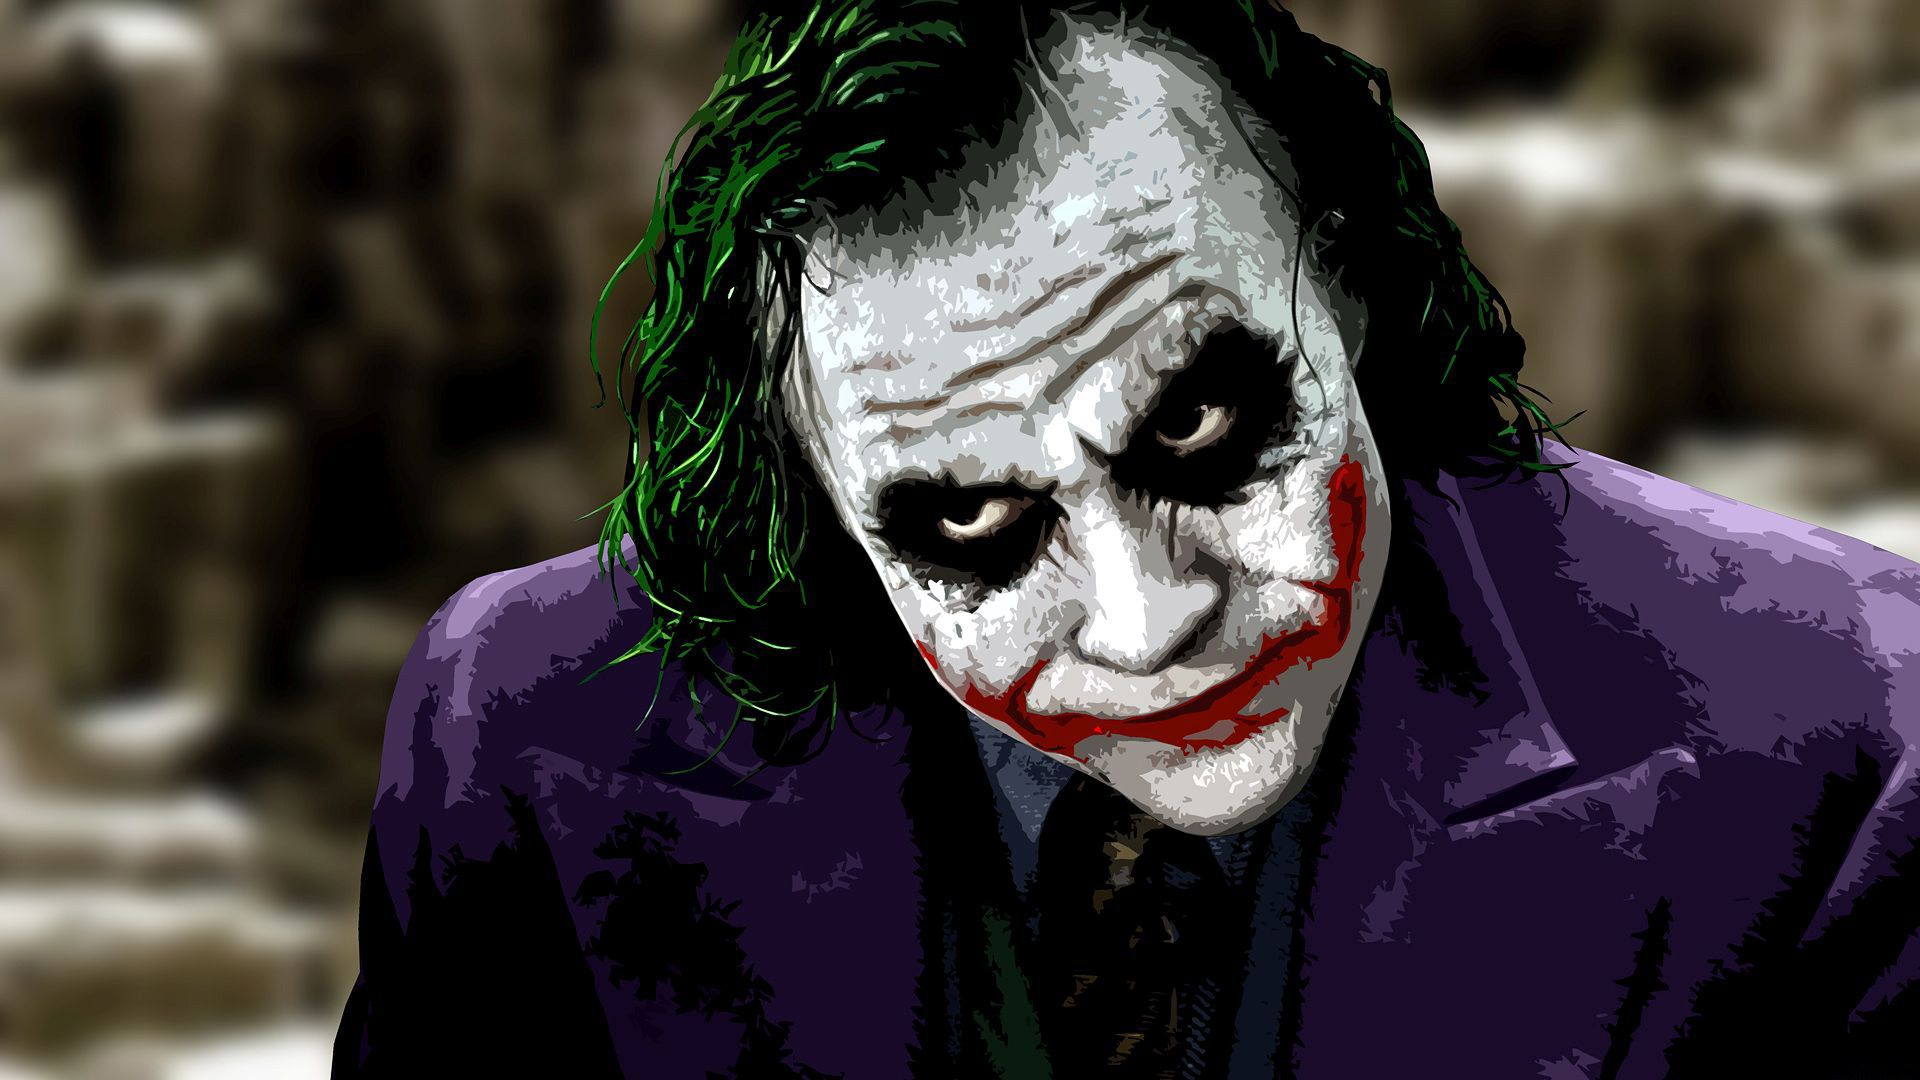 Hd wallpaper vans - These Are The Related Keywords For The Term Quot The Joker